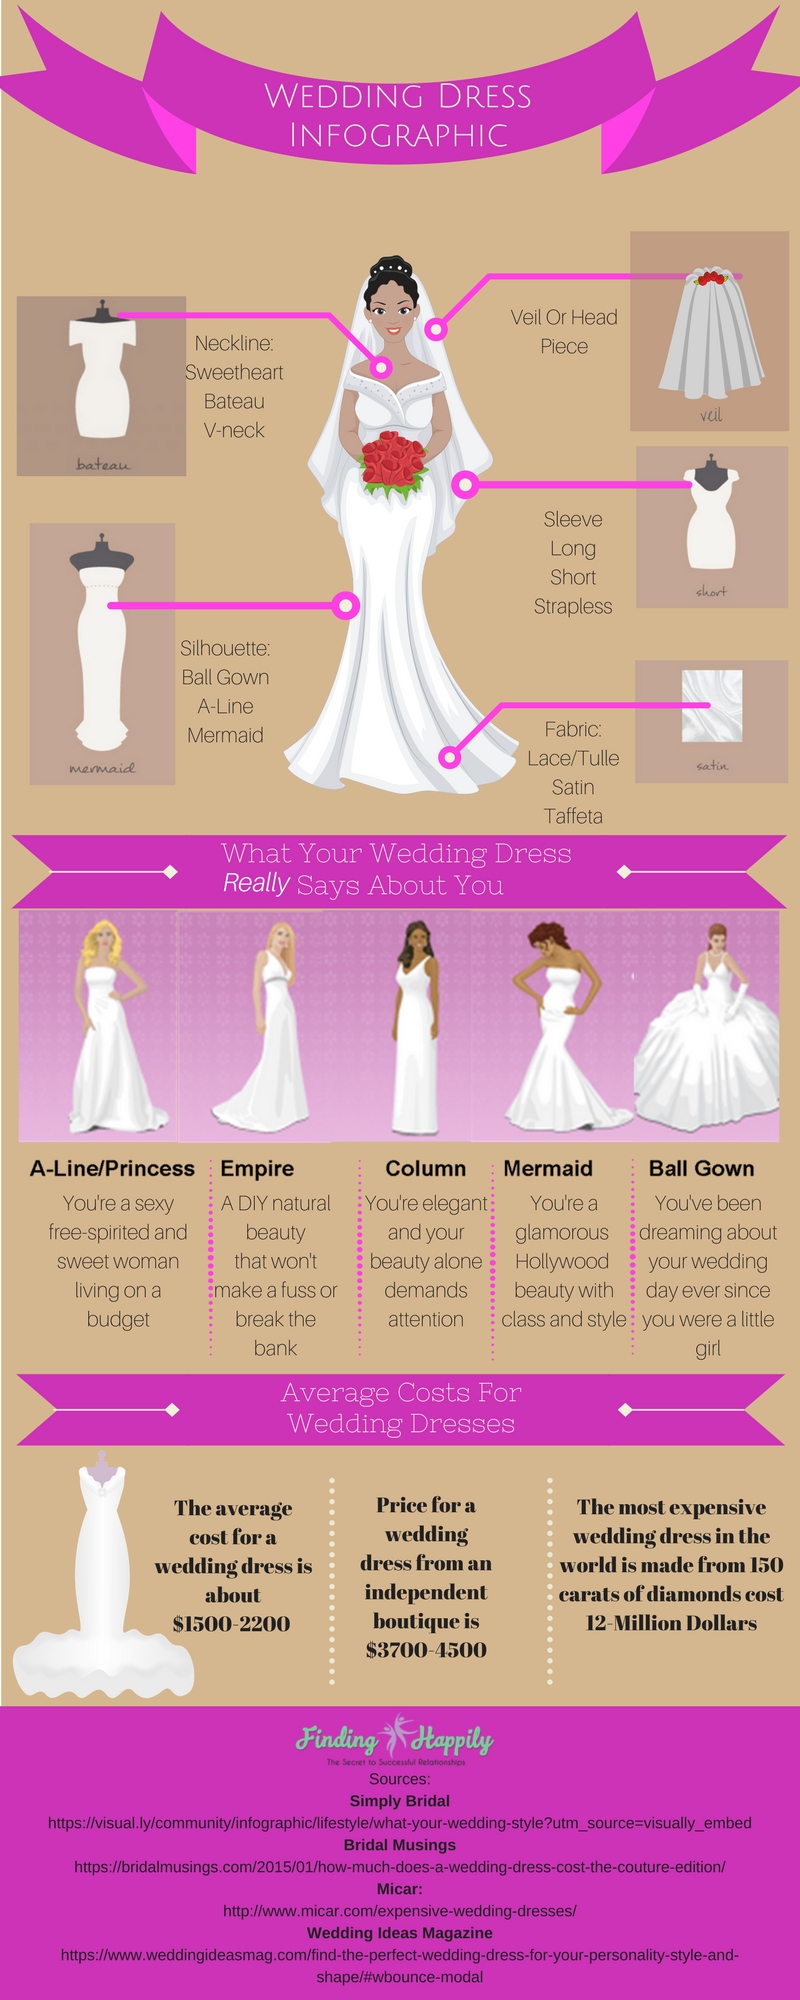 Wedding Dress Infographic: - Finding Happily